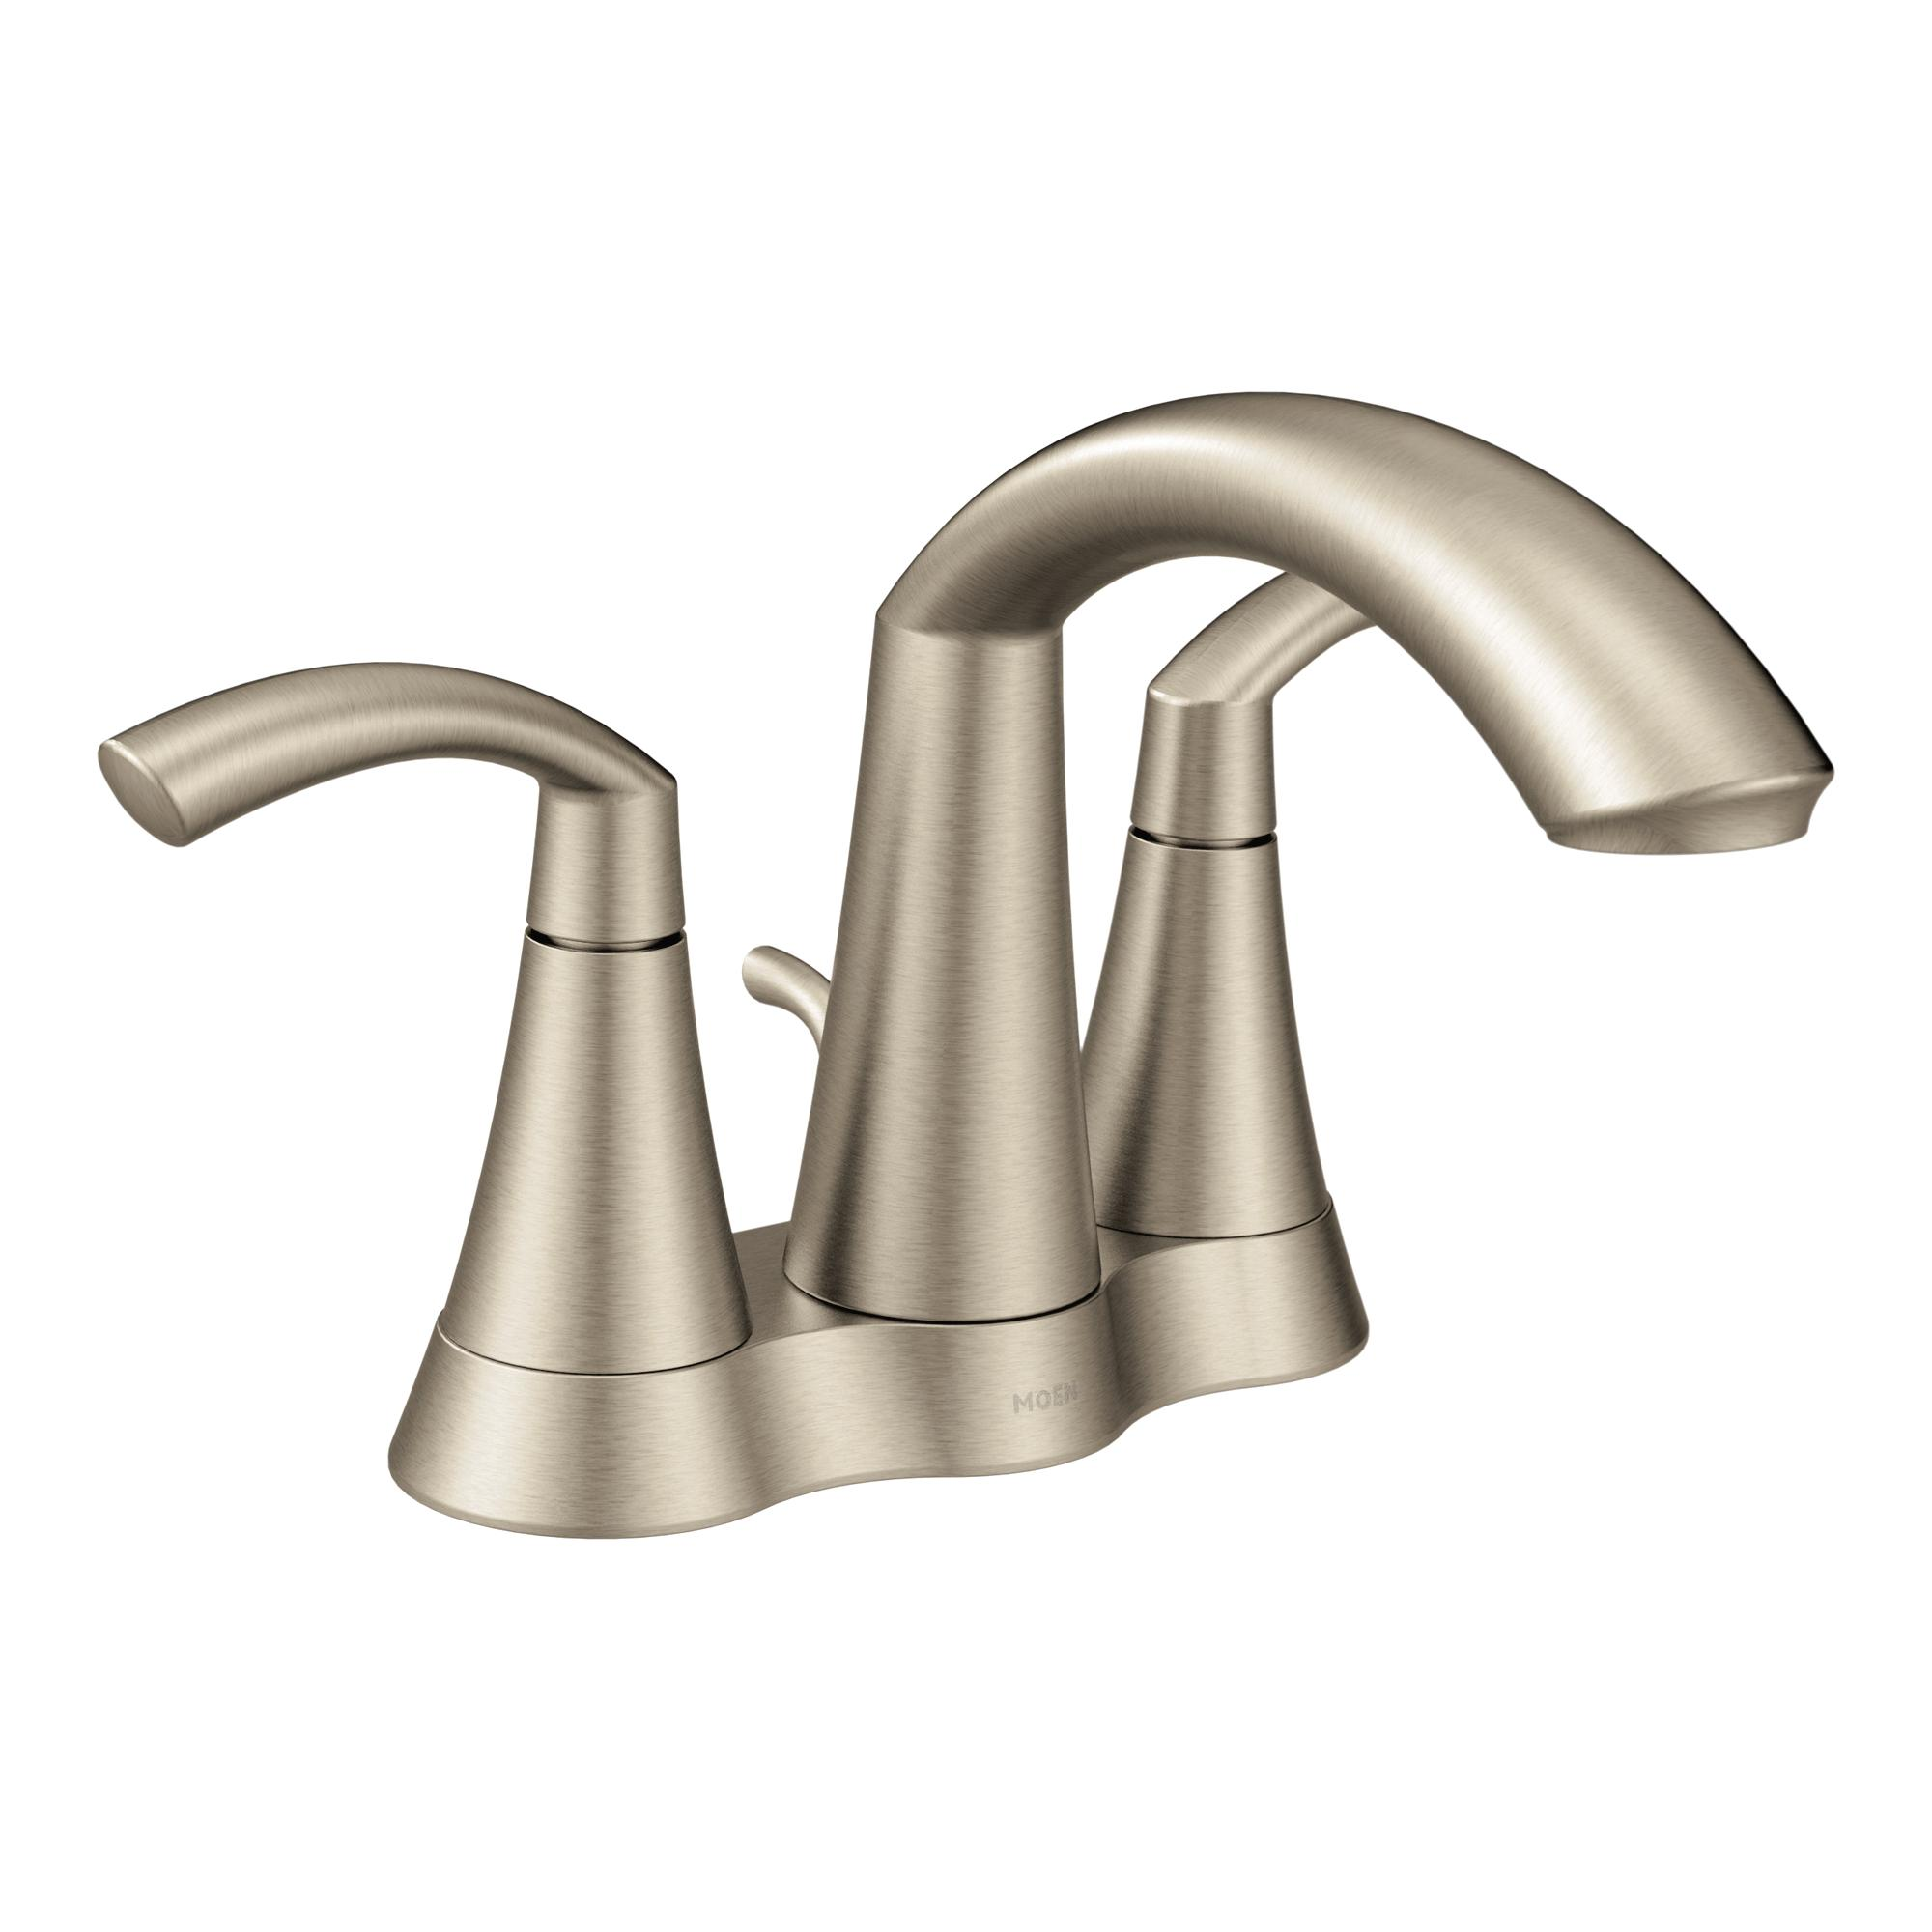 Moen 6172 Glyde Two Handle High Arc Bathroom Faucet Chrome